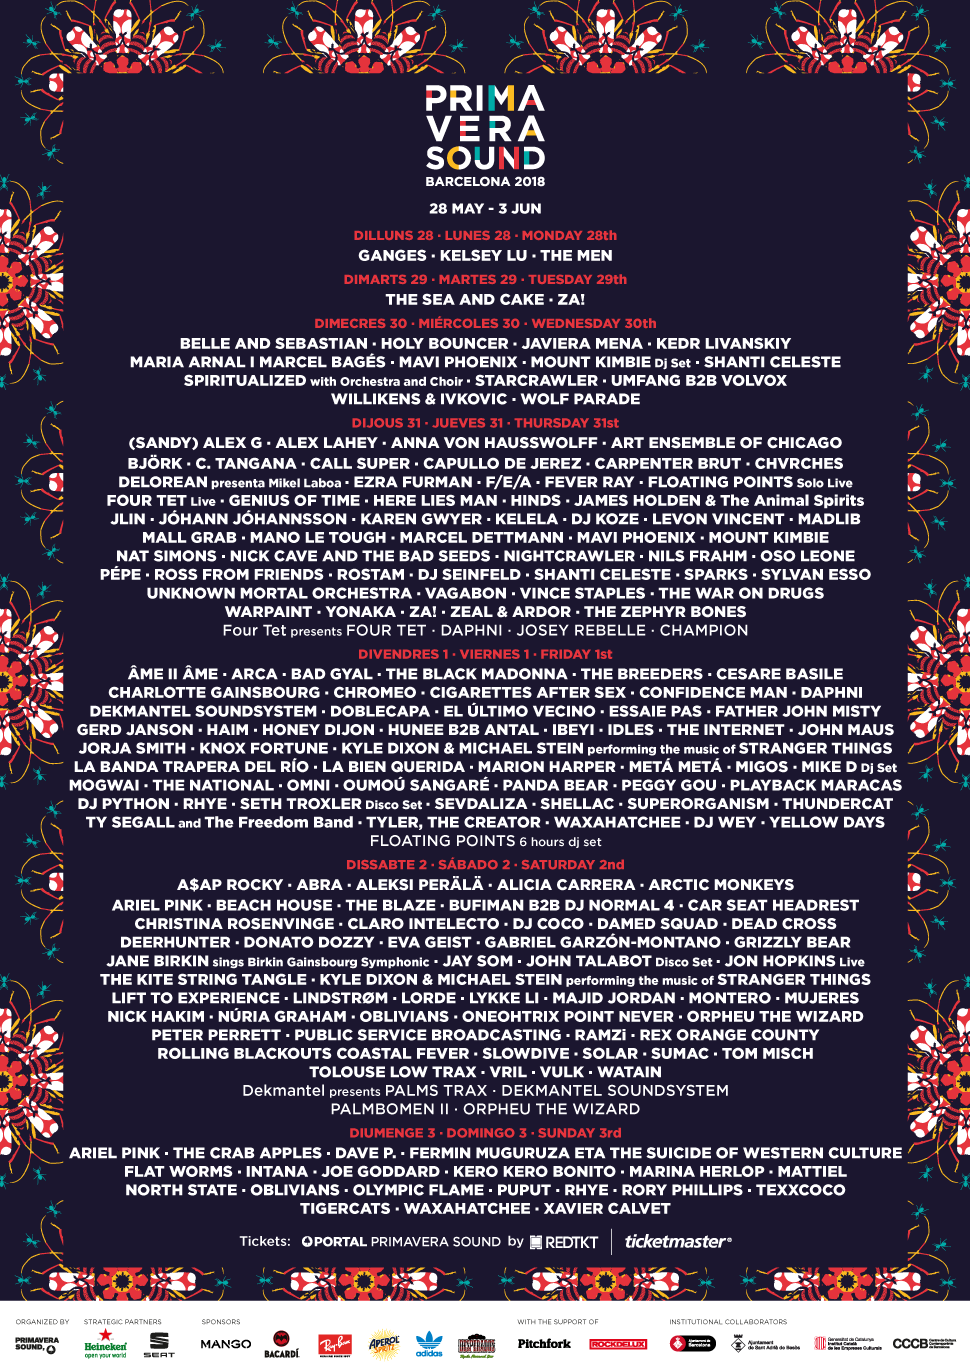 HEADLINERS: Arctic Monkeys, A$AP Rocky, Björk, Nick Cave and the Bad Seeds  WHEN & WHERE: May 28 - June 3 2018, Barcelona